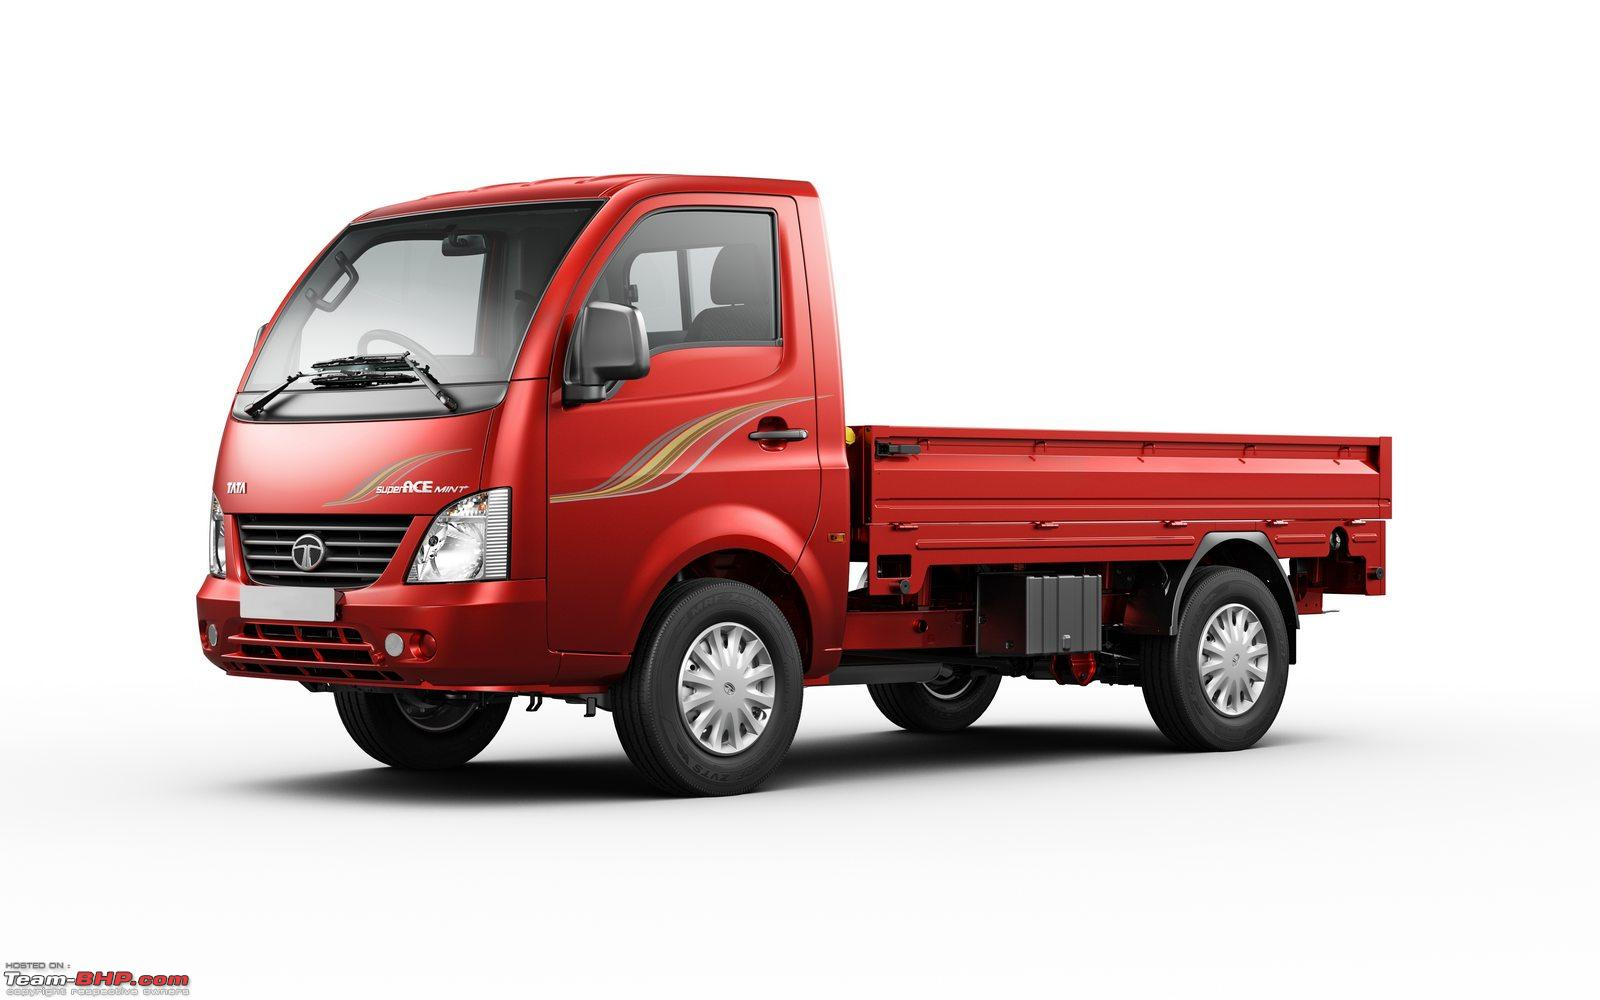 Tata Motors Launches Super Ace Mint At Rs. 5.09 Lakh